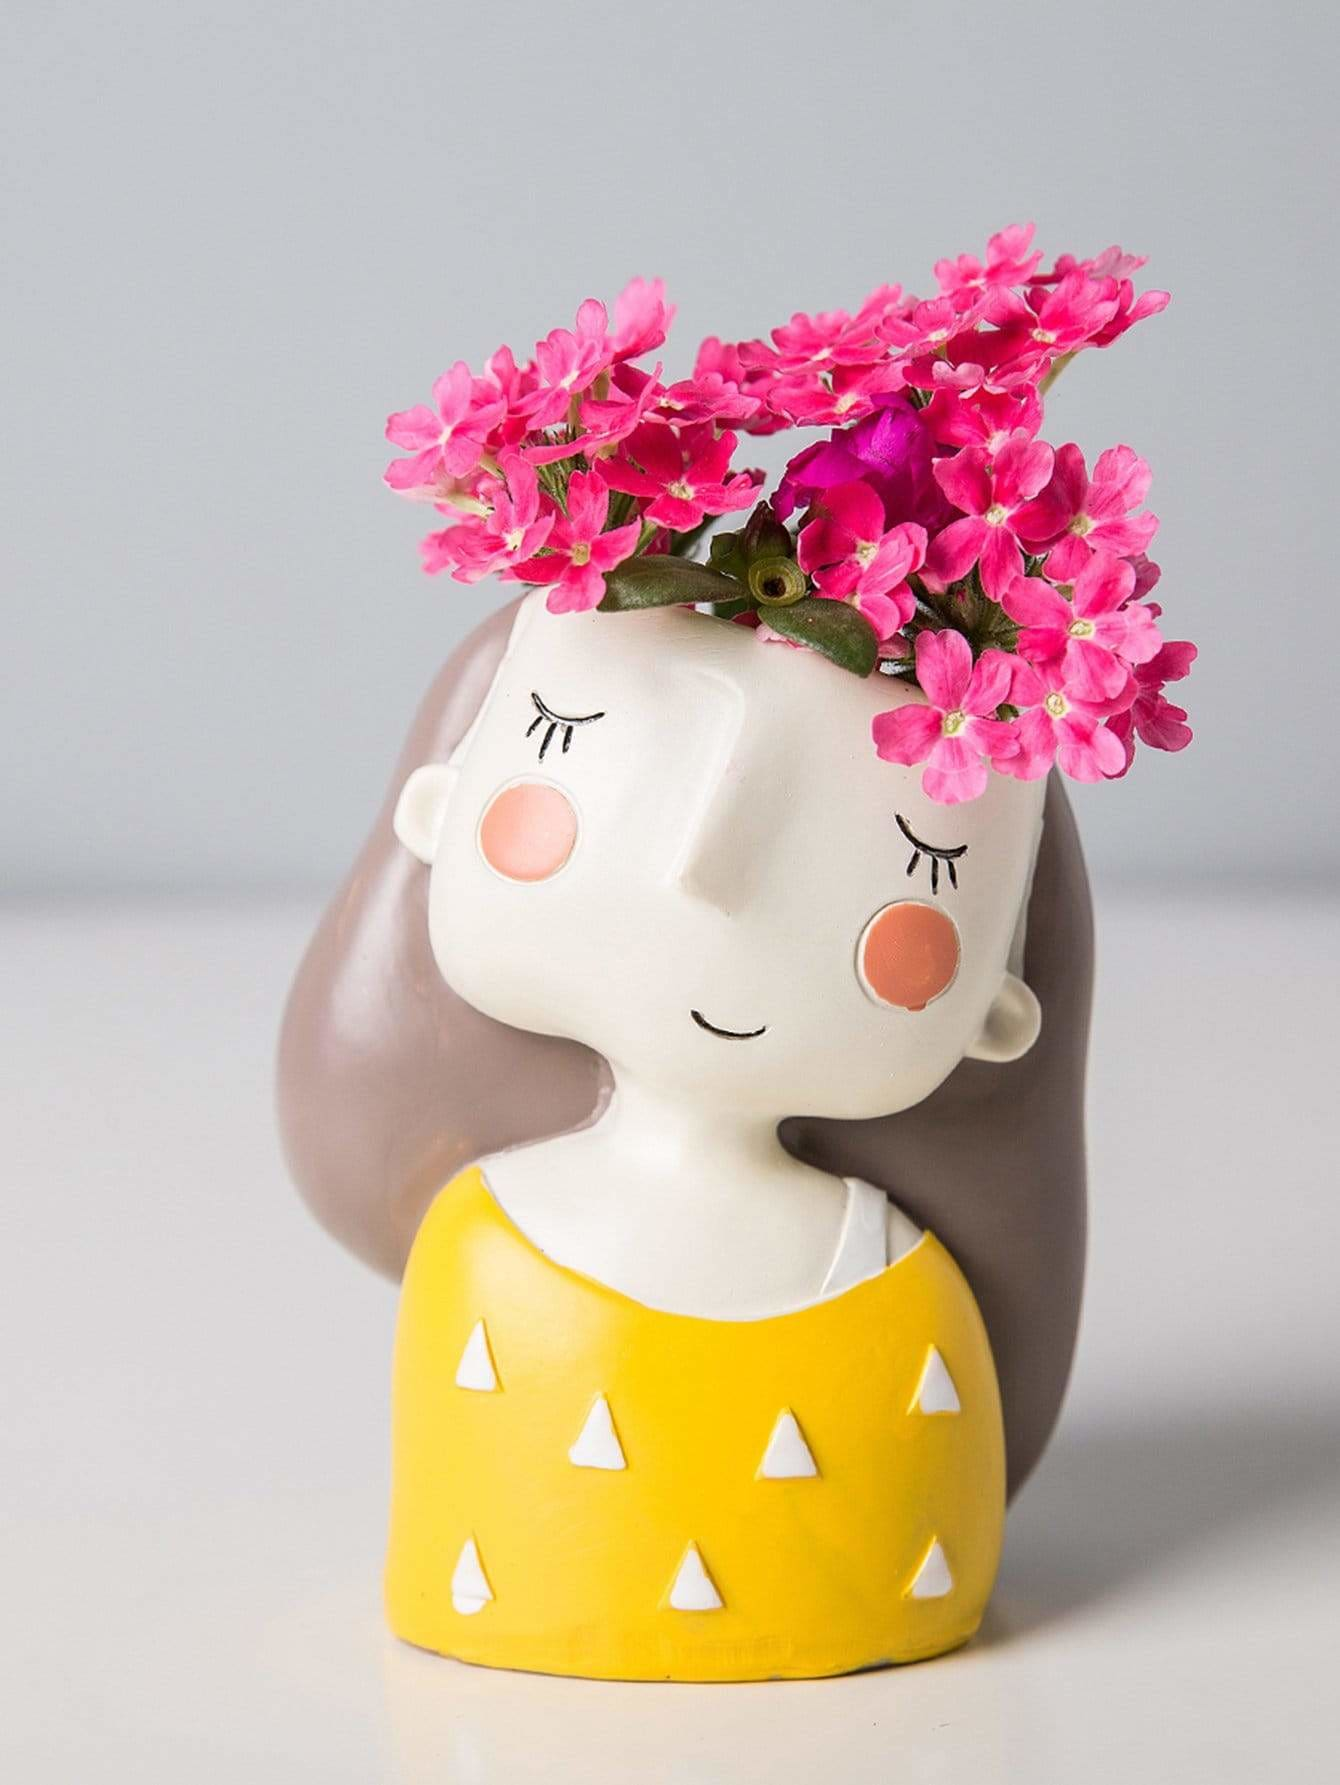 Girl Design Decorative Object